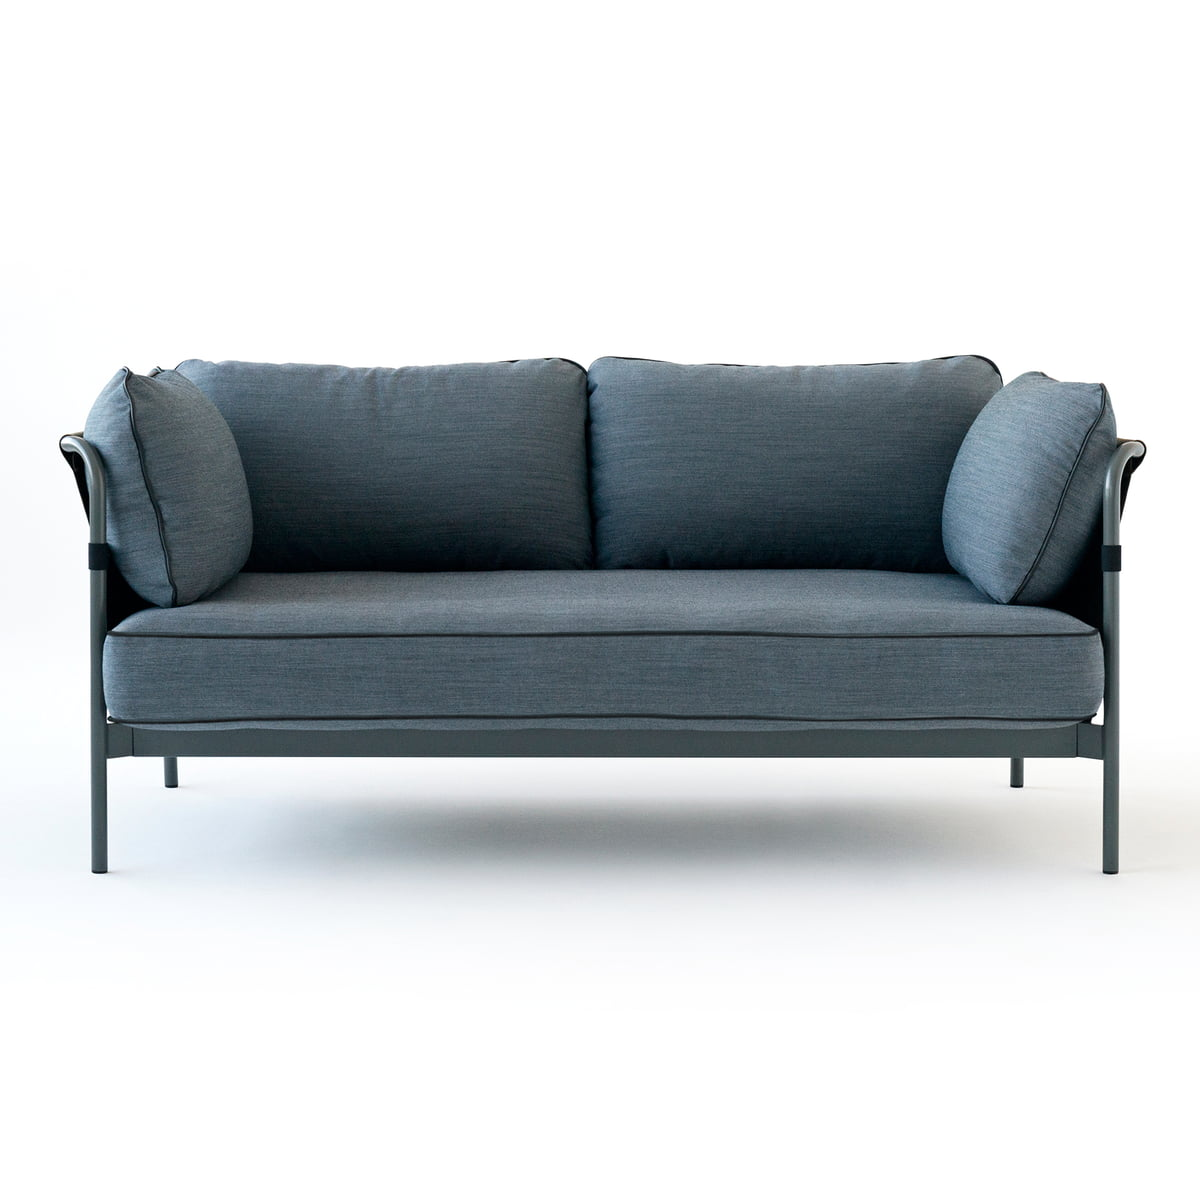 Can 2 Seater Sofa By Hay At The Home Design Shop